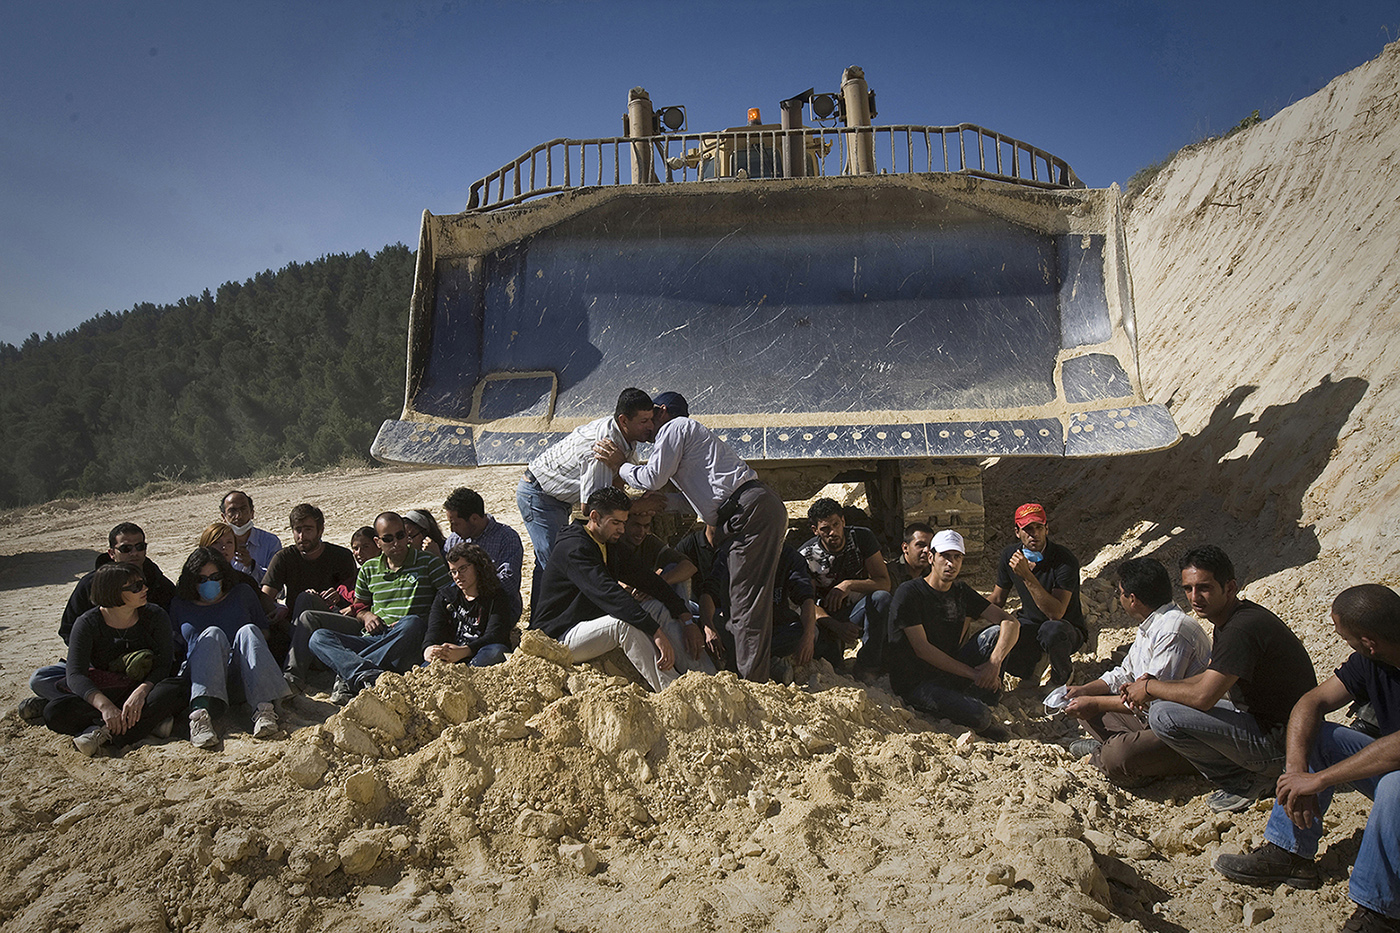 Palestinian villagers and supporting activists blocked the path of a bulldozer during a direct action against the building of the Separation Wall in Al-Walaja, West Bank near Bethlehem, May 6th, 2010. Most of the activists were arrested during the action. (Photo by Oren Ziv/GroundTruth)